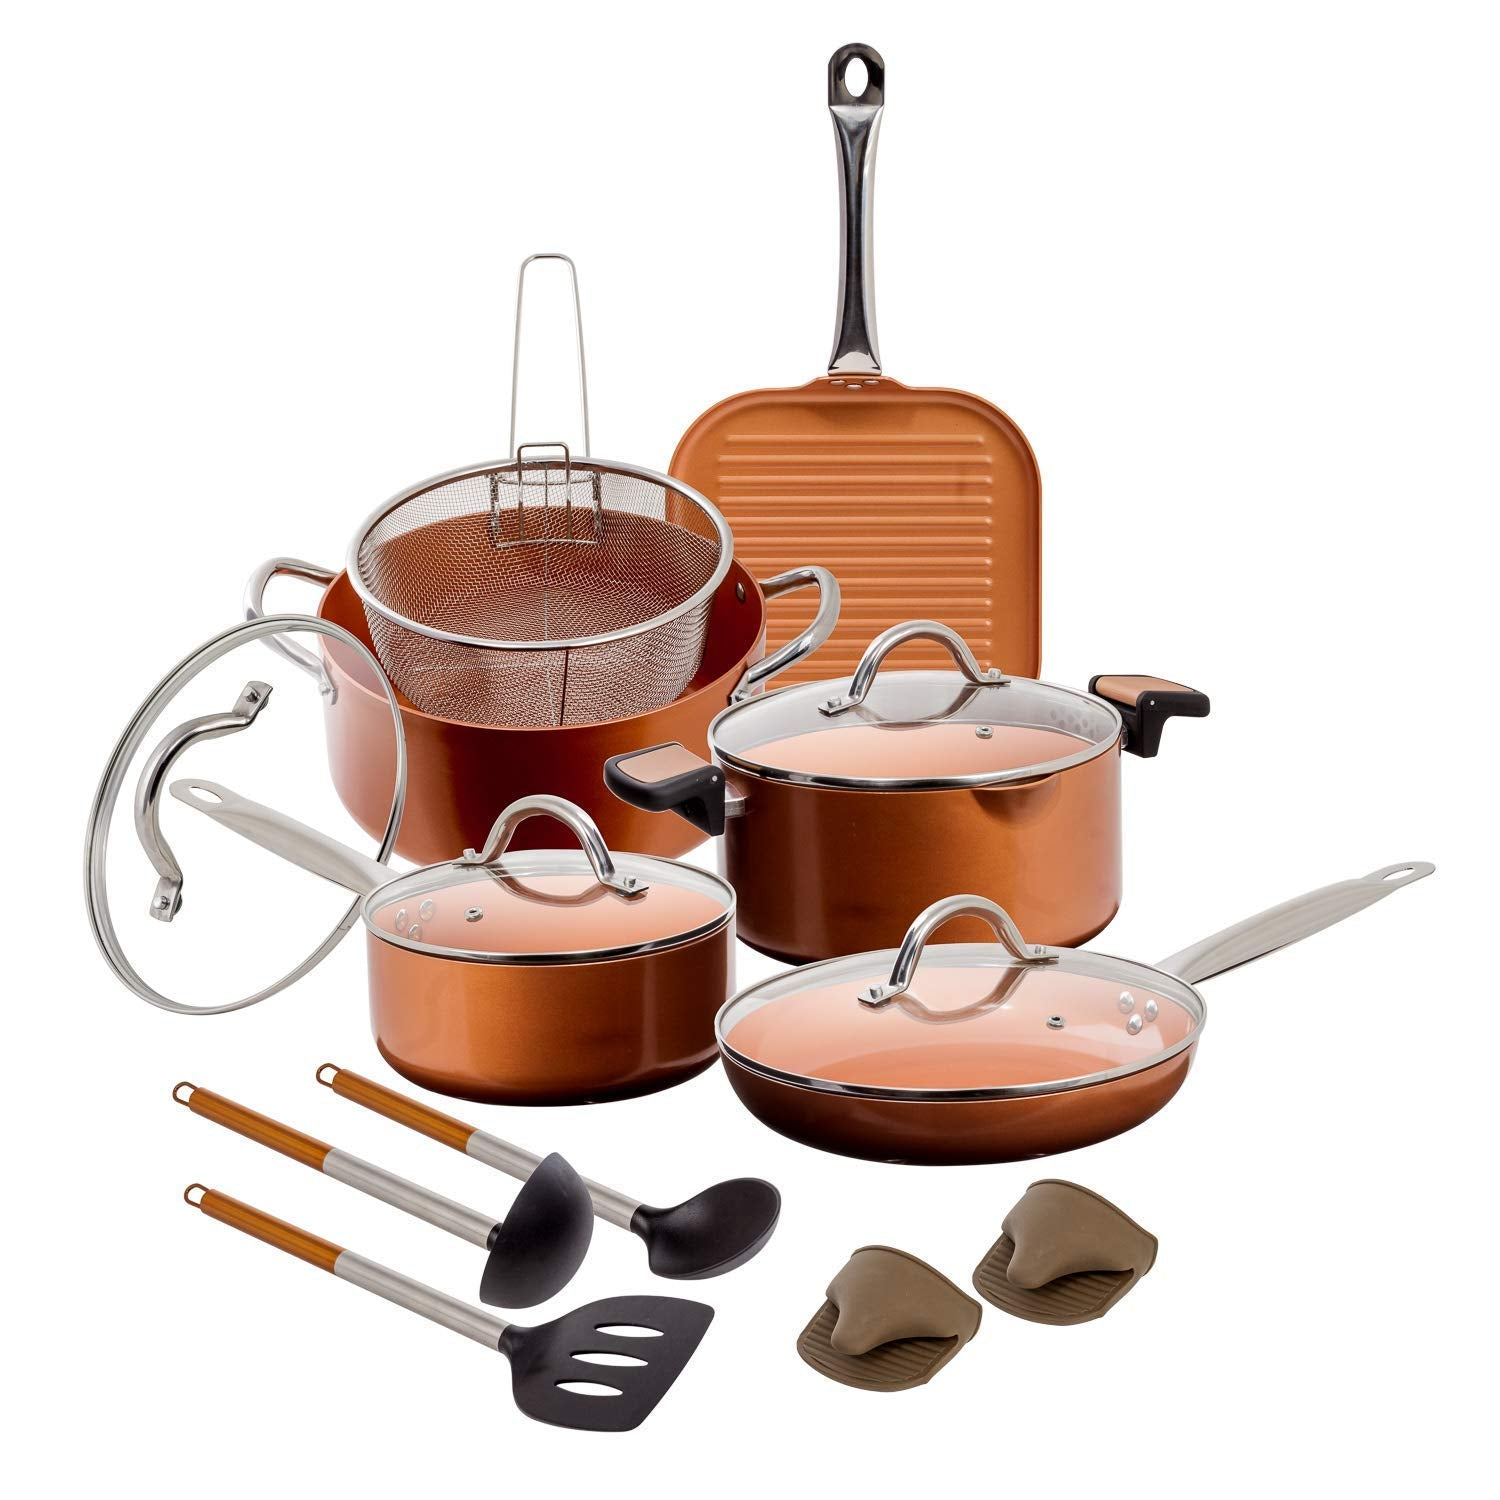 15 pc Copper Aluminum Cookware Set – Copper Nonstick Cookware Sets – Pots and Pans Set with Fryer Insert, Glass Lids, Spatula, Spoon, and more